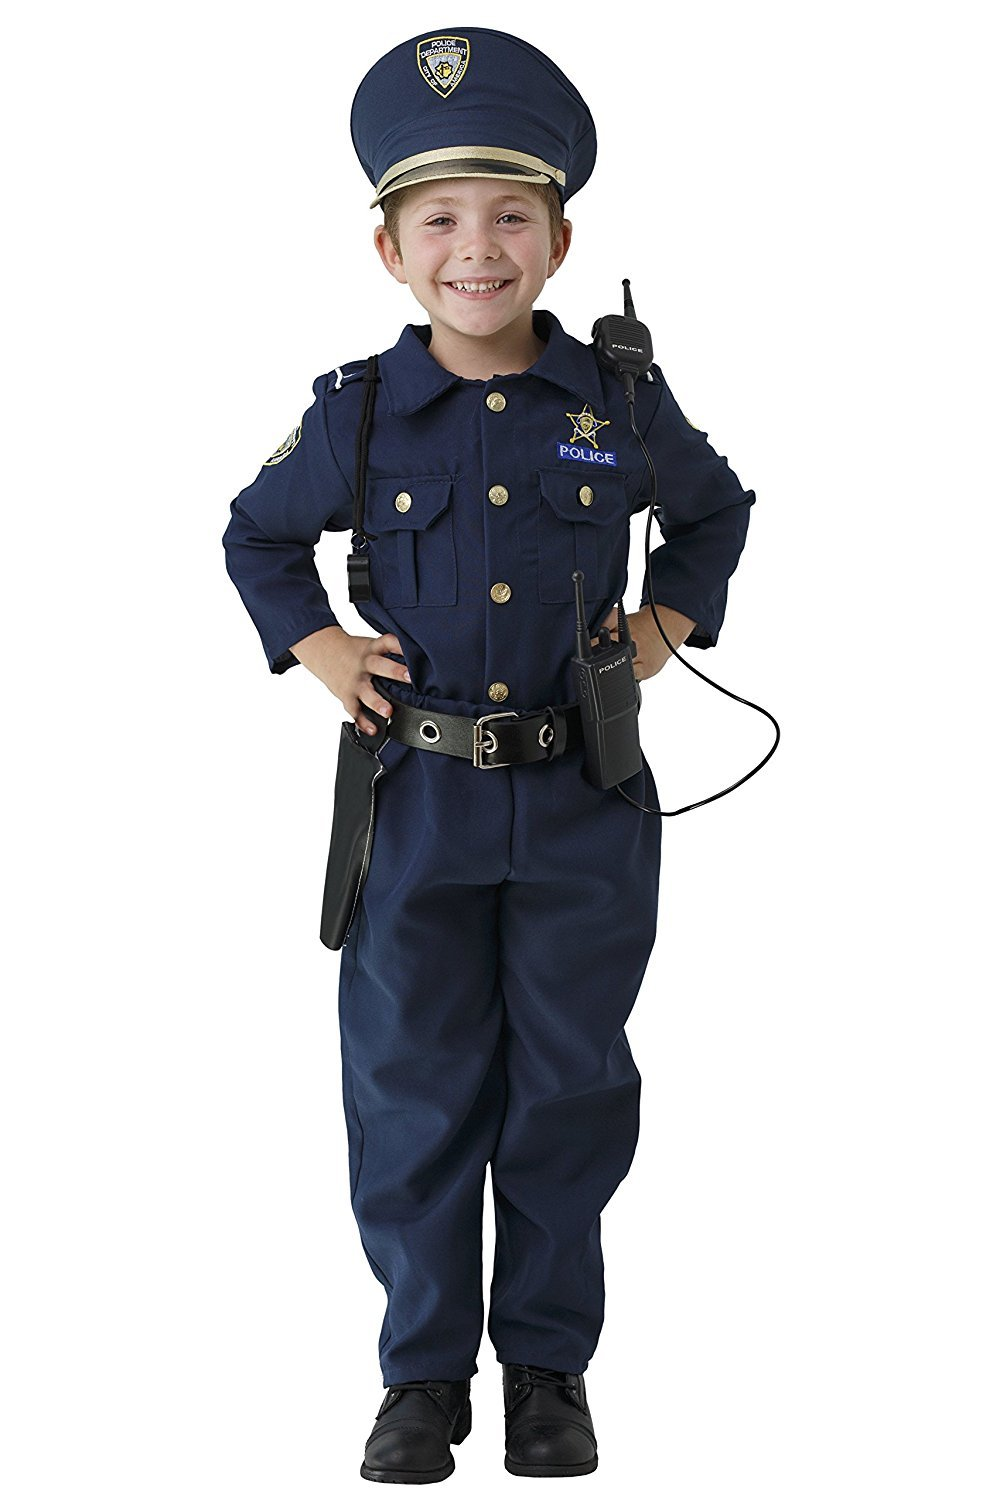 B001798QEU Dress Up America Deluxe Police Dress Up Costume Set - Includes Shirt, Pants, Hat, Belt, Whistle, Gun Holster and Walkie Talkie (Medium) 613ner3Rz2L